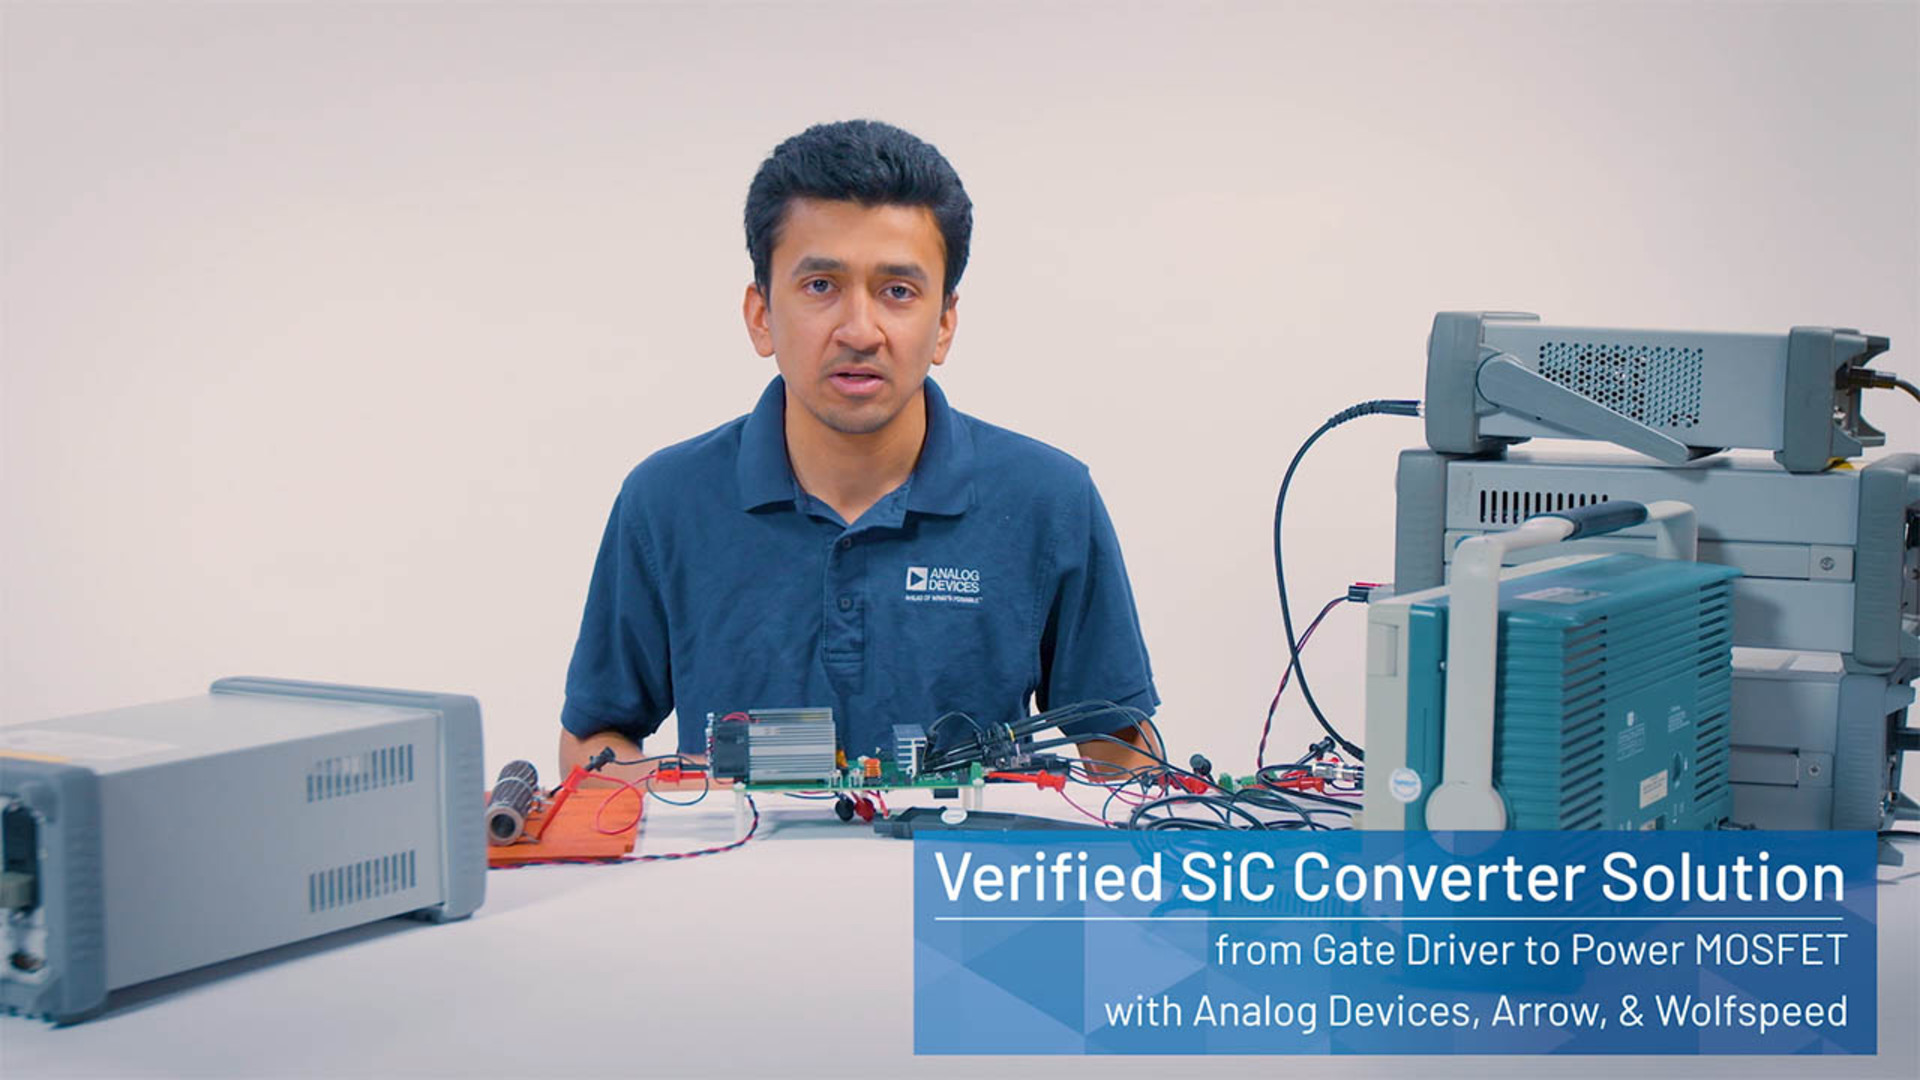 Verified SiC Converter Solution from Gate Driver to Power MOSFET